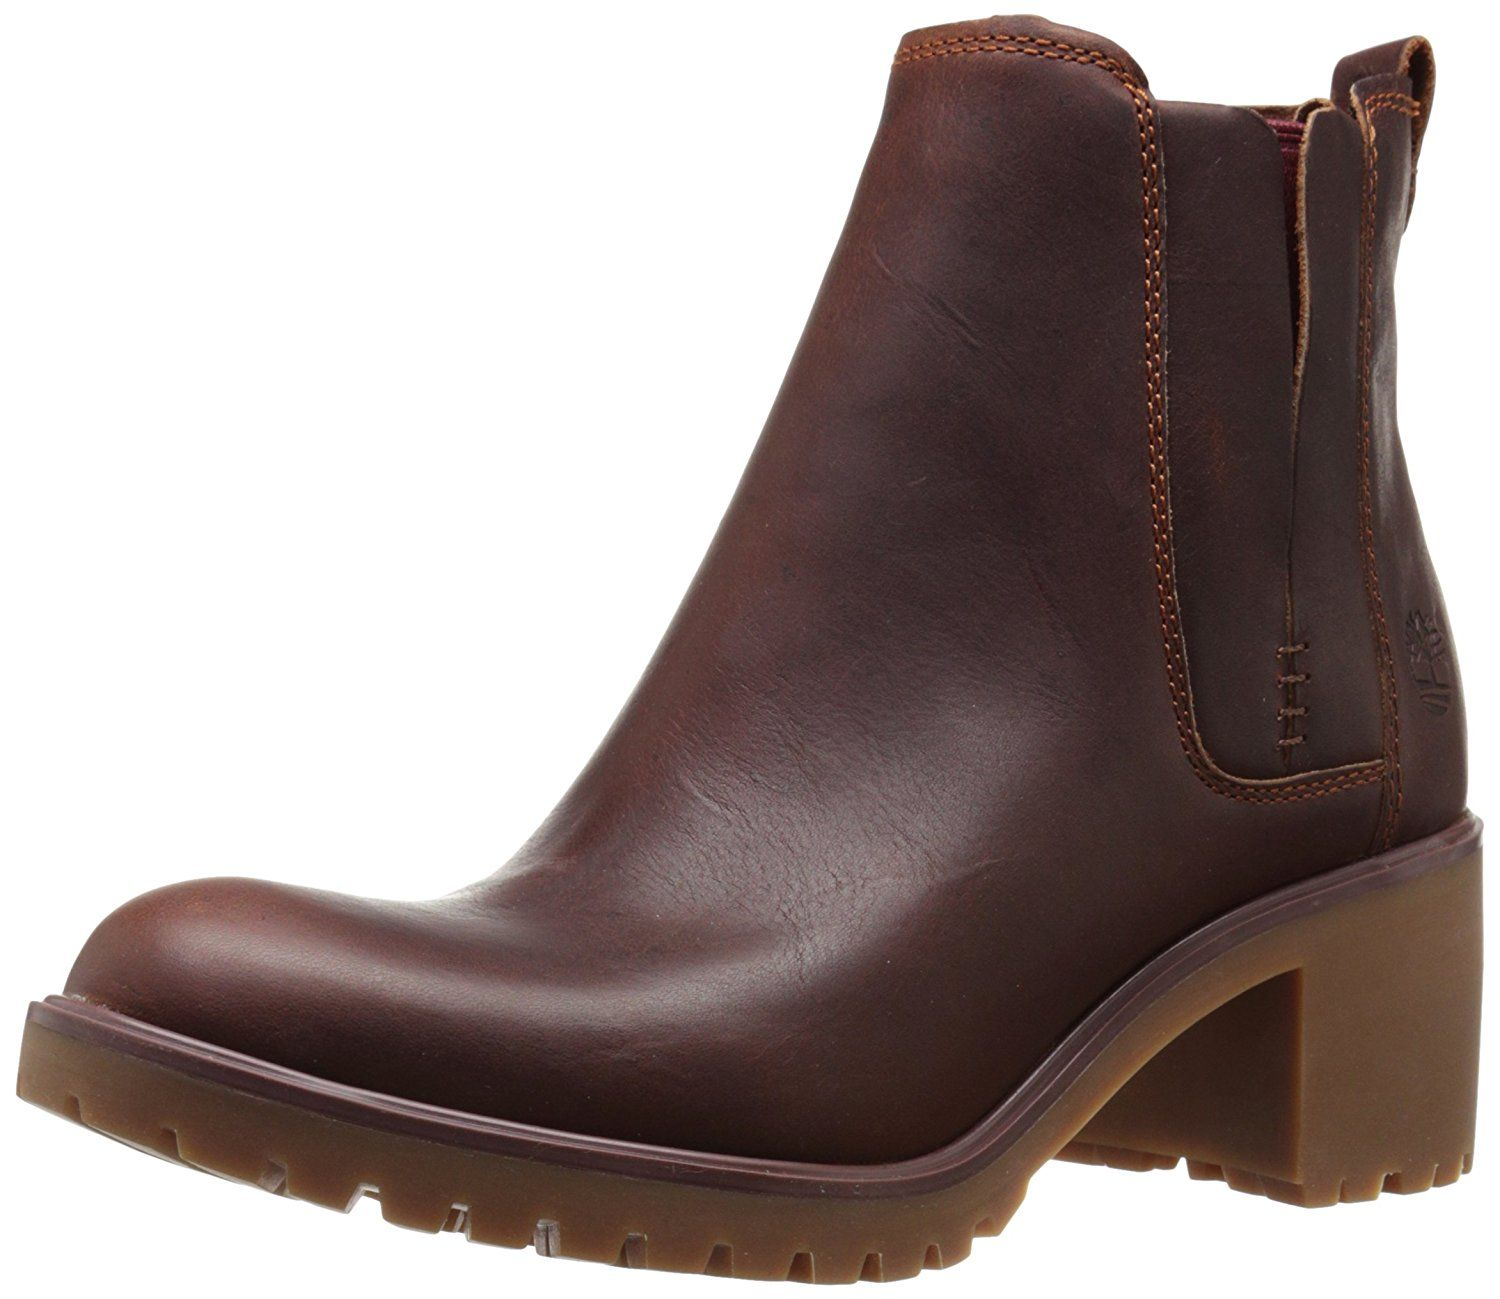 Chelsea Amazon Timberland Is Averly BootThis An Women's thxBQsdCr